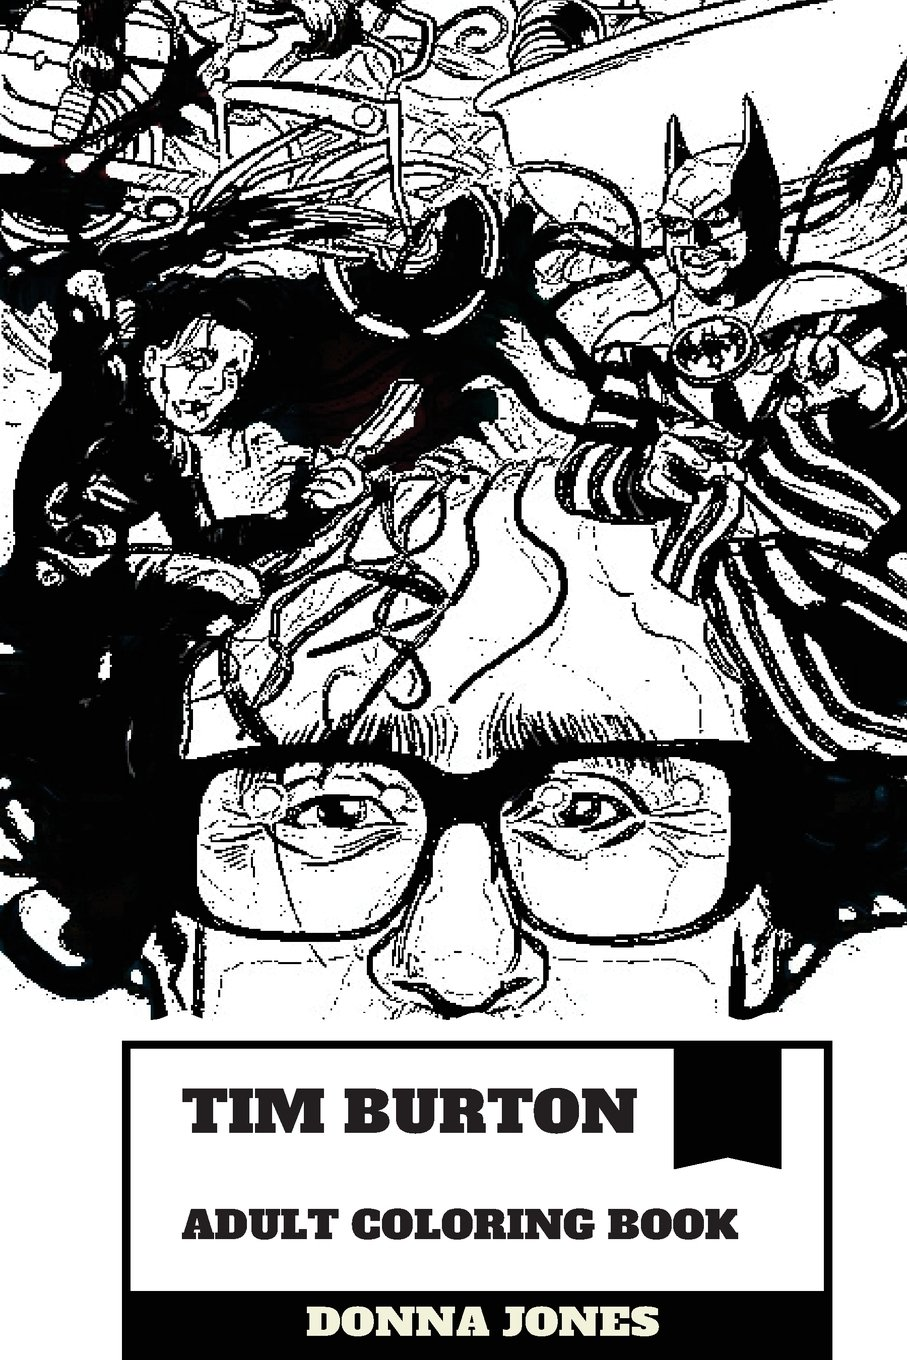 Tim Burton Adult Coloring Book: Award Winning American ...